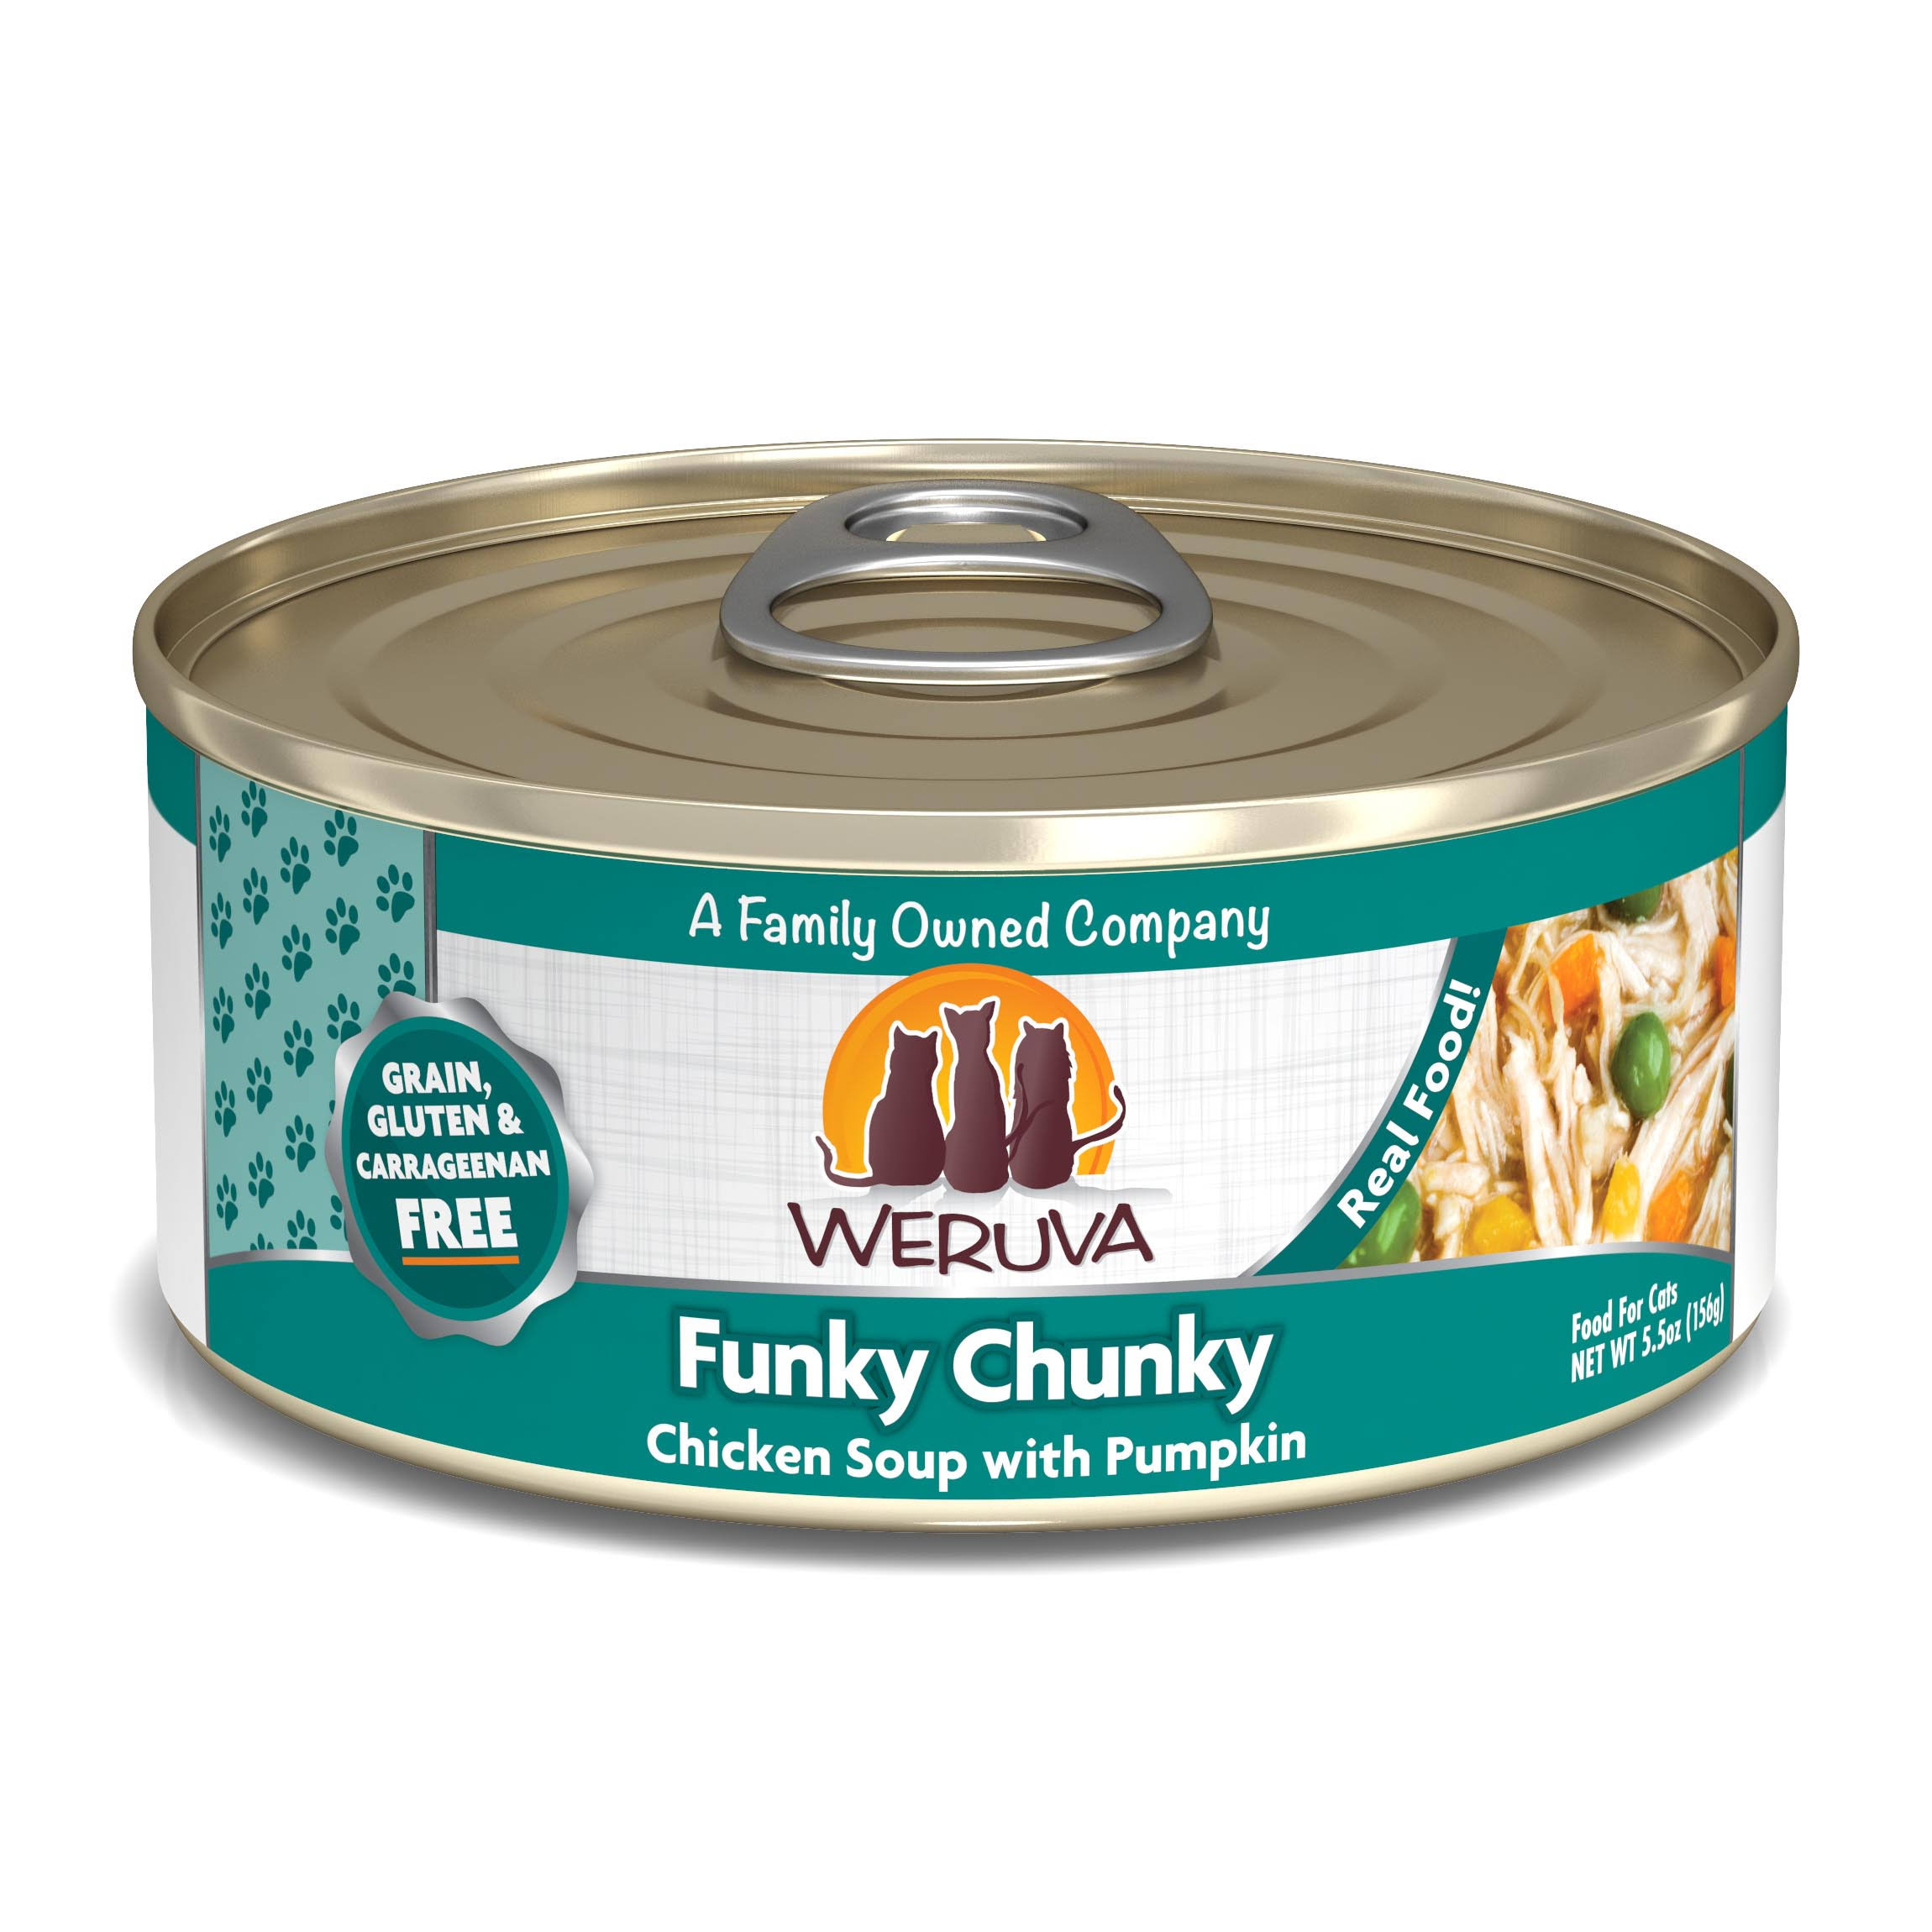 Weruva Canned Cat Food - Funky Chunky, 5.5oz